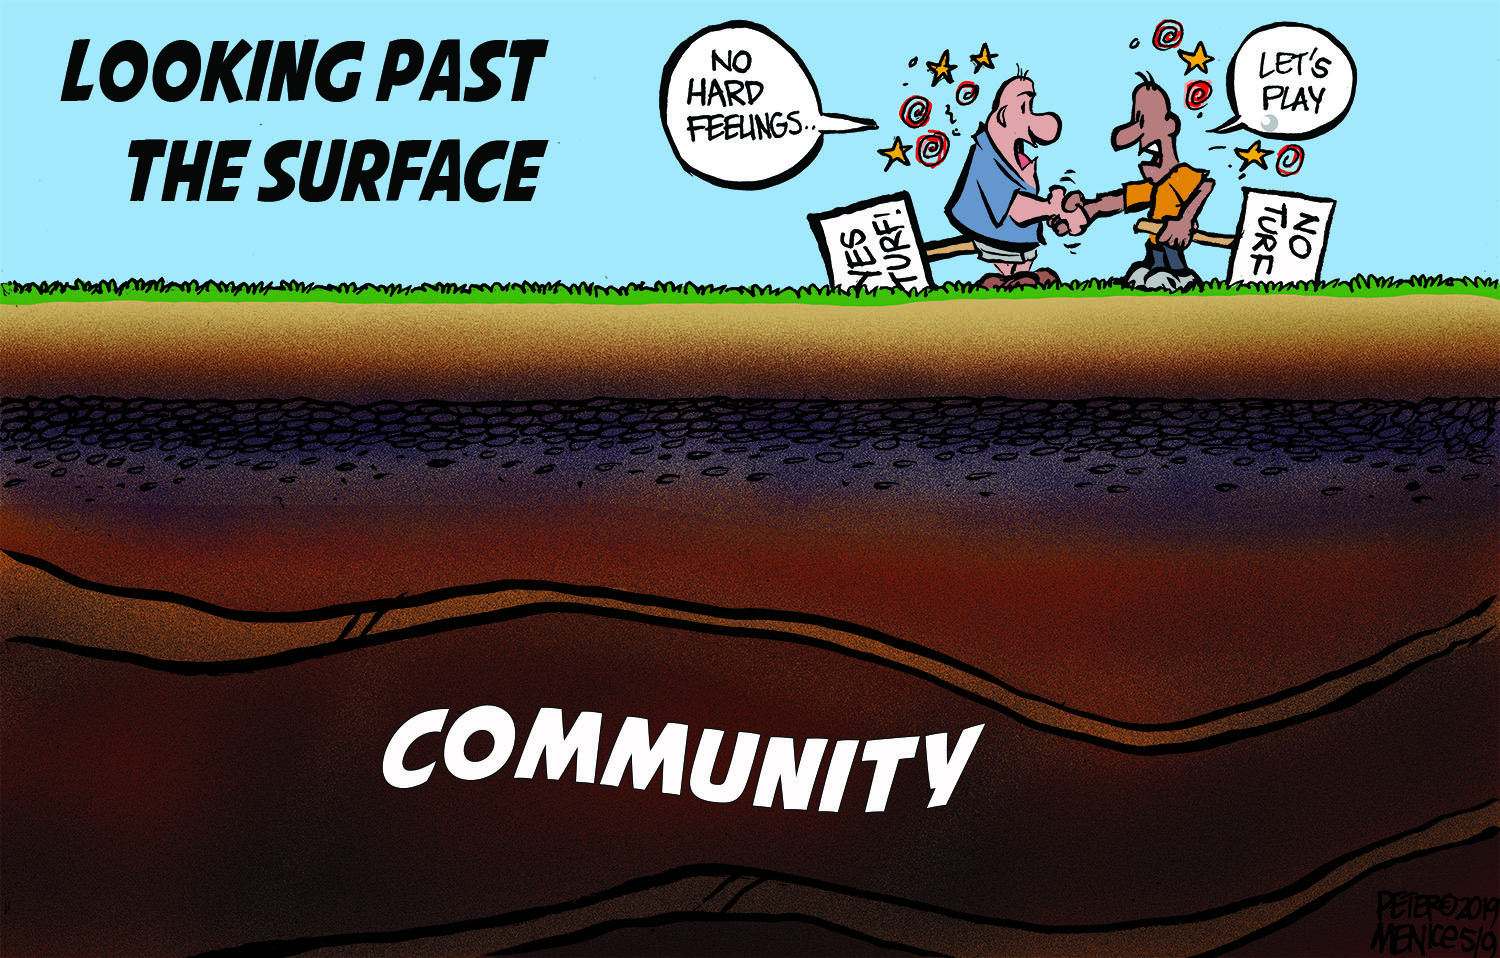 Beneath the surface, Peter cartoon.jpg